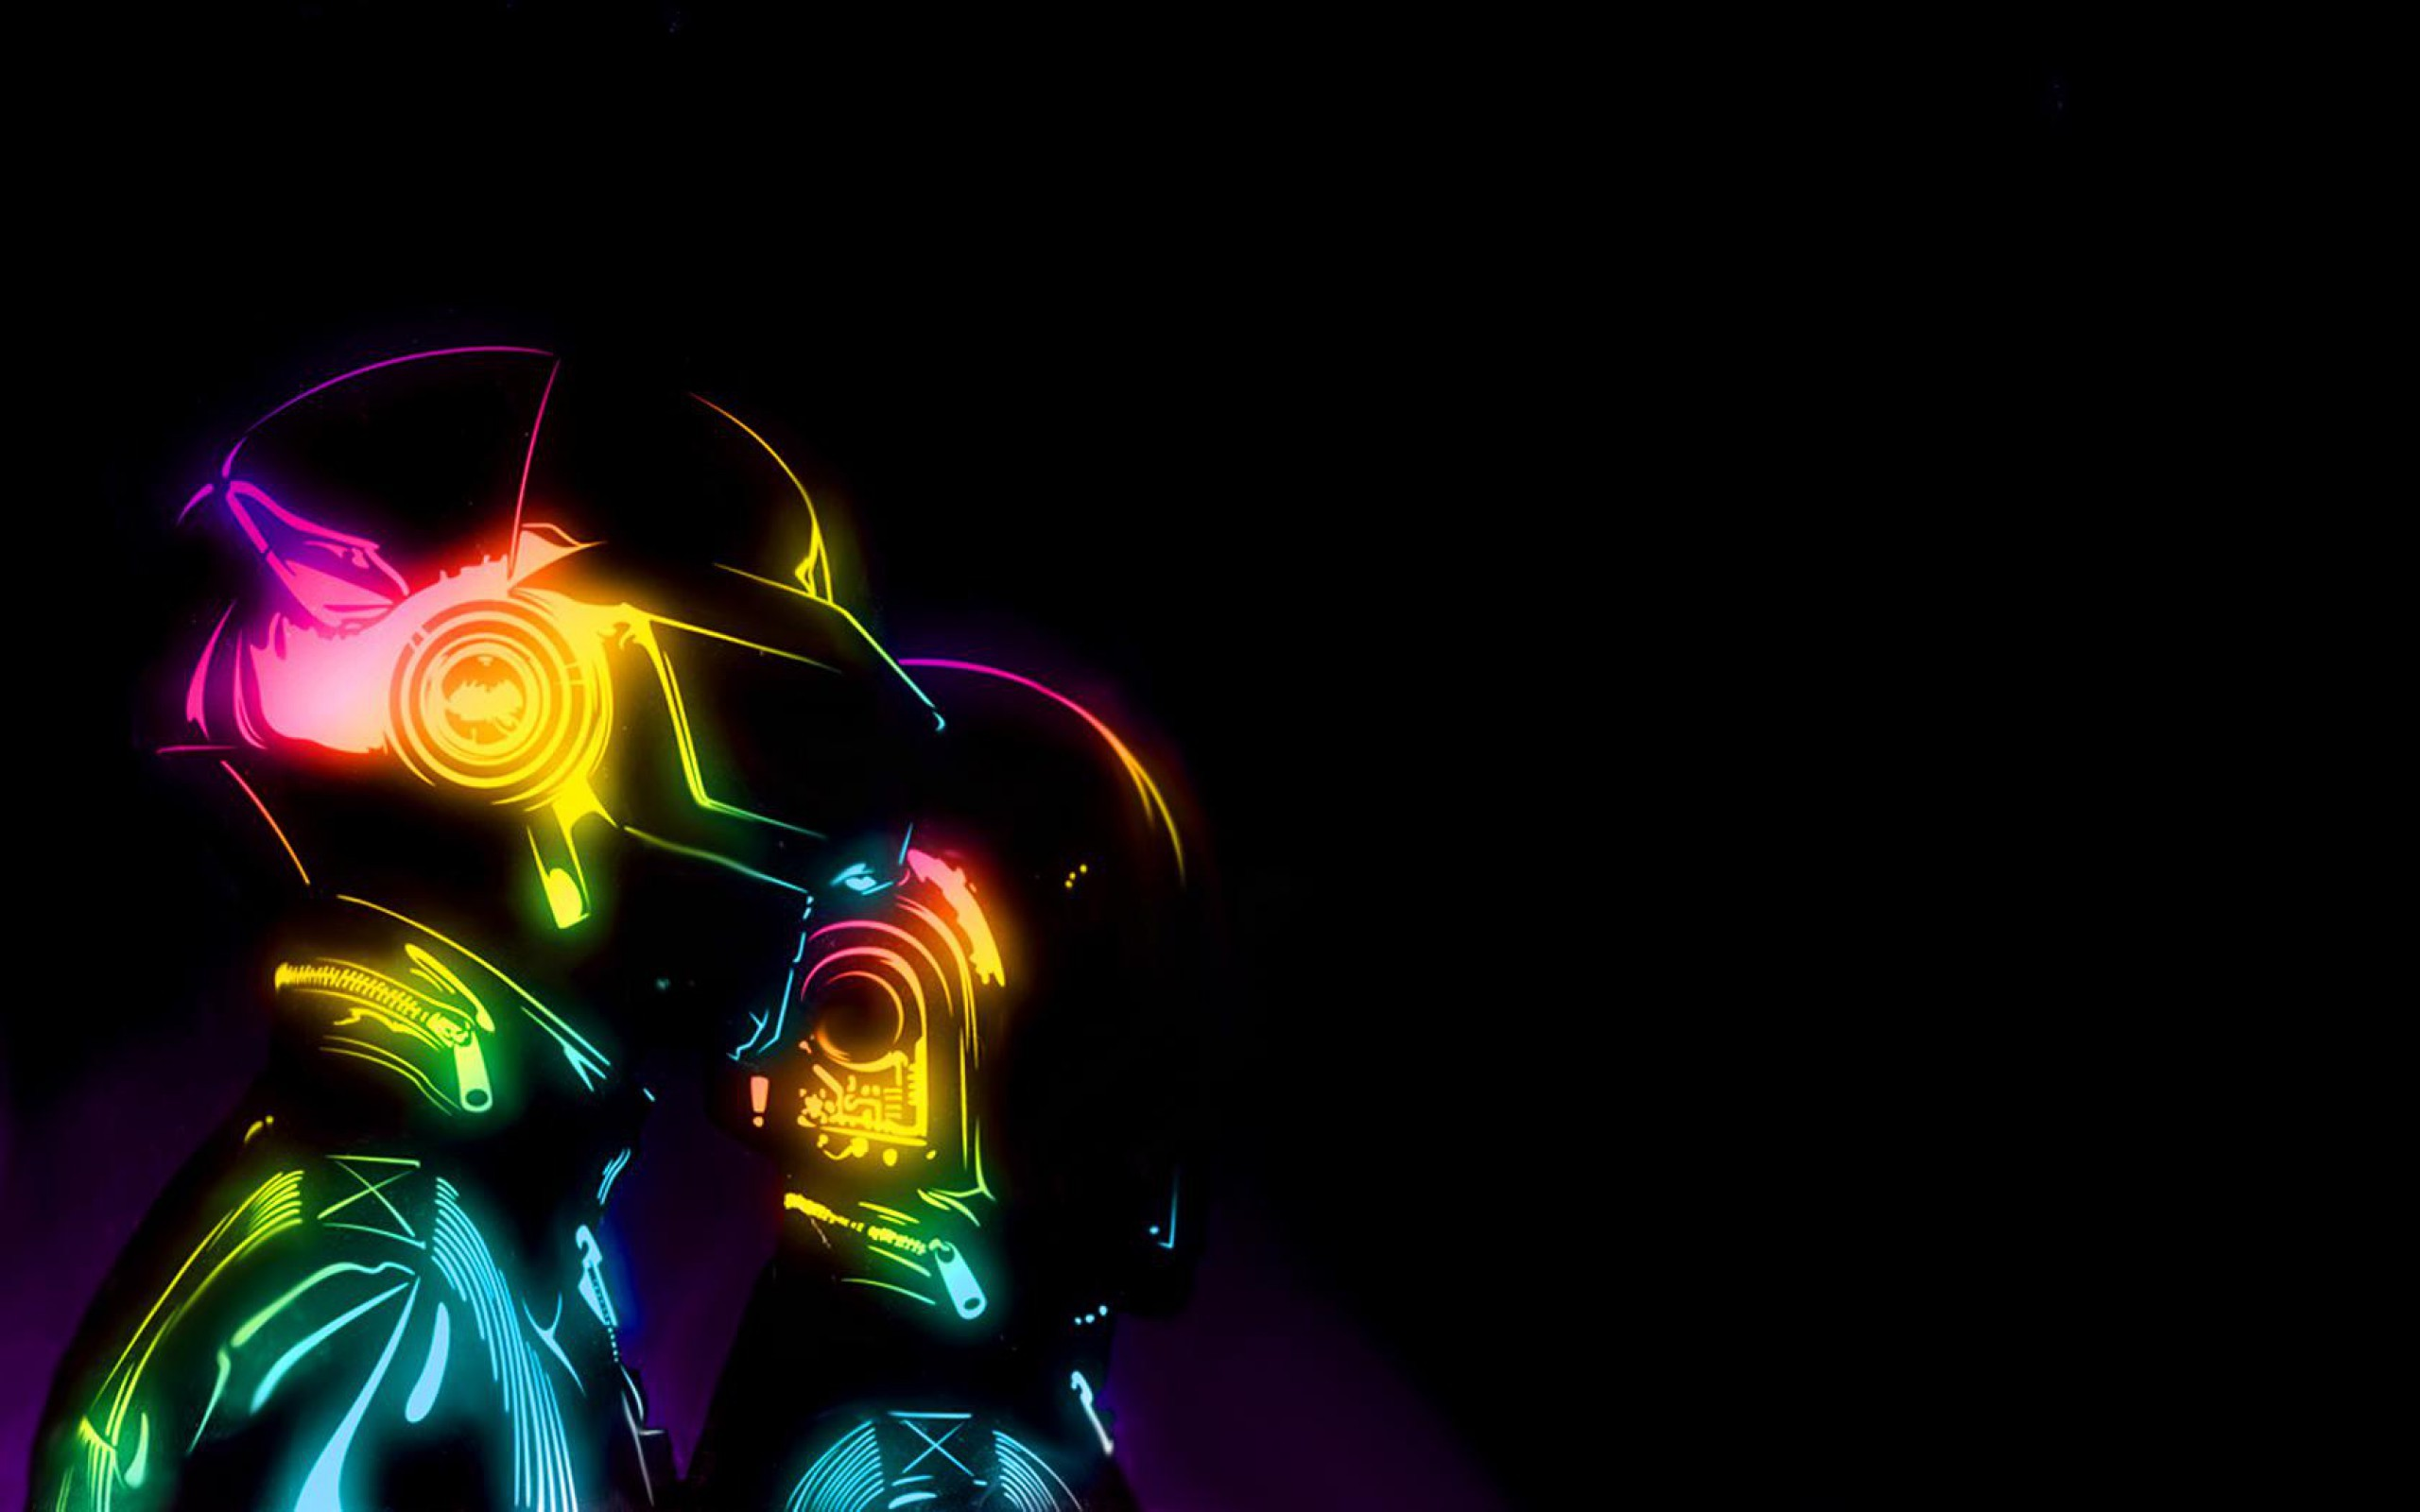 Electronic Music Desktop and mobile wallpaper Wallippo 2560x1600